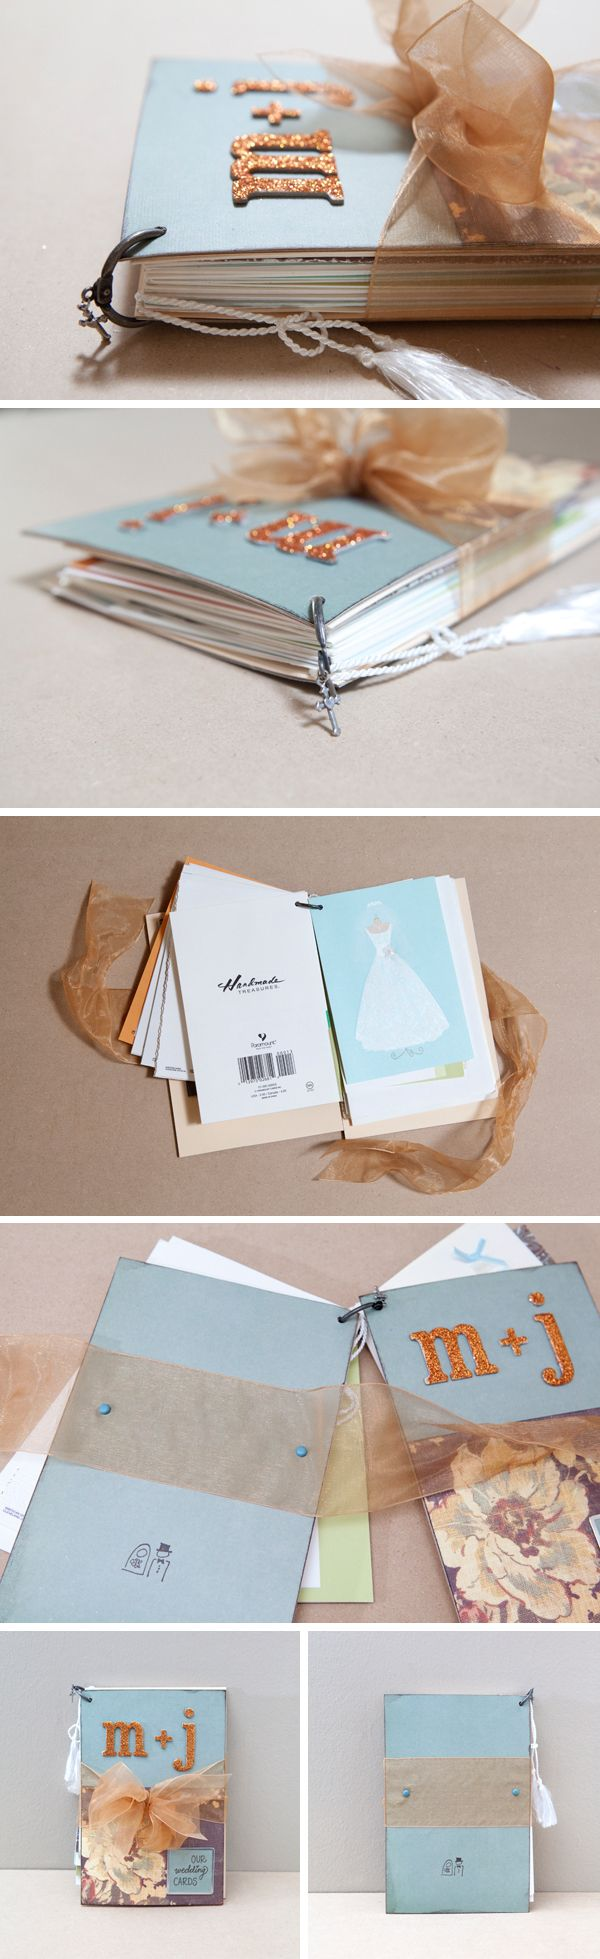 Did you get a lot of wedding cards? Do you want to hold on to them, but want them to be organized and nicely displayed? Make a book out of them! Here's how to DIY: